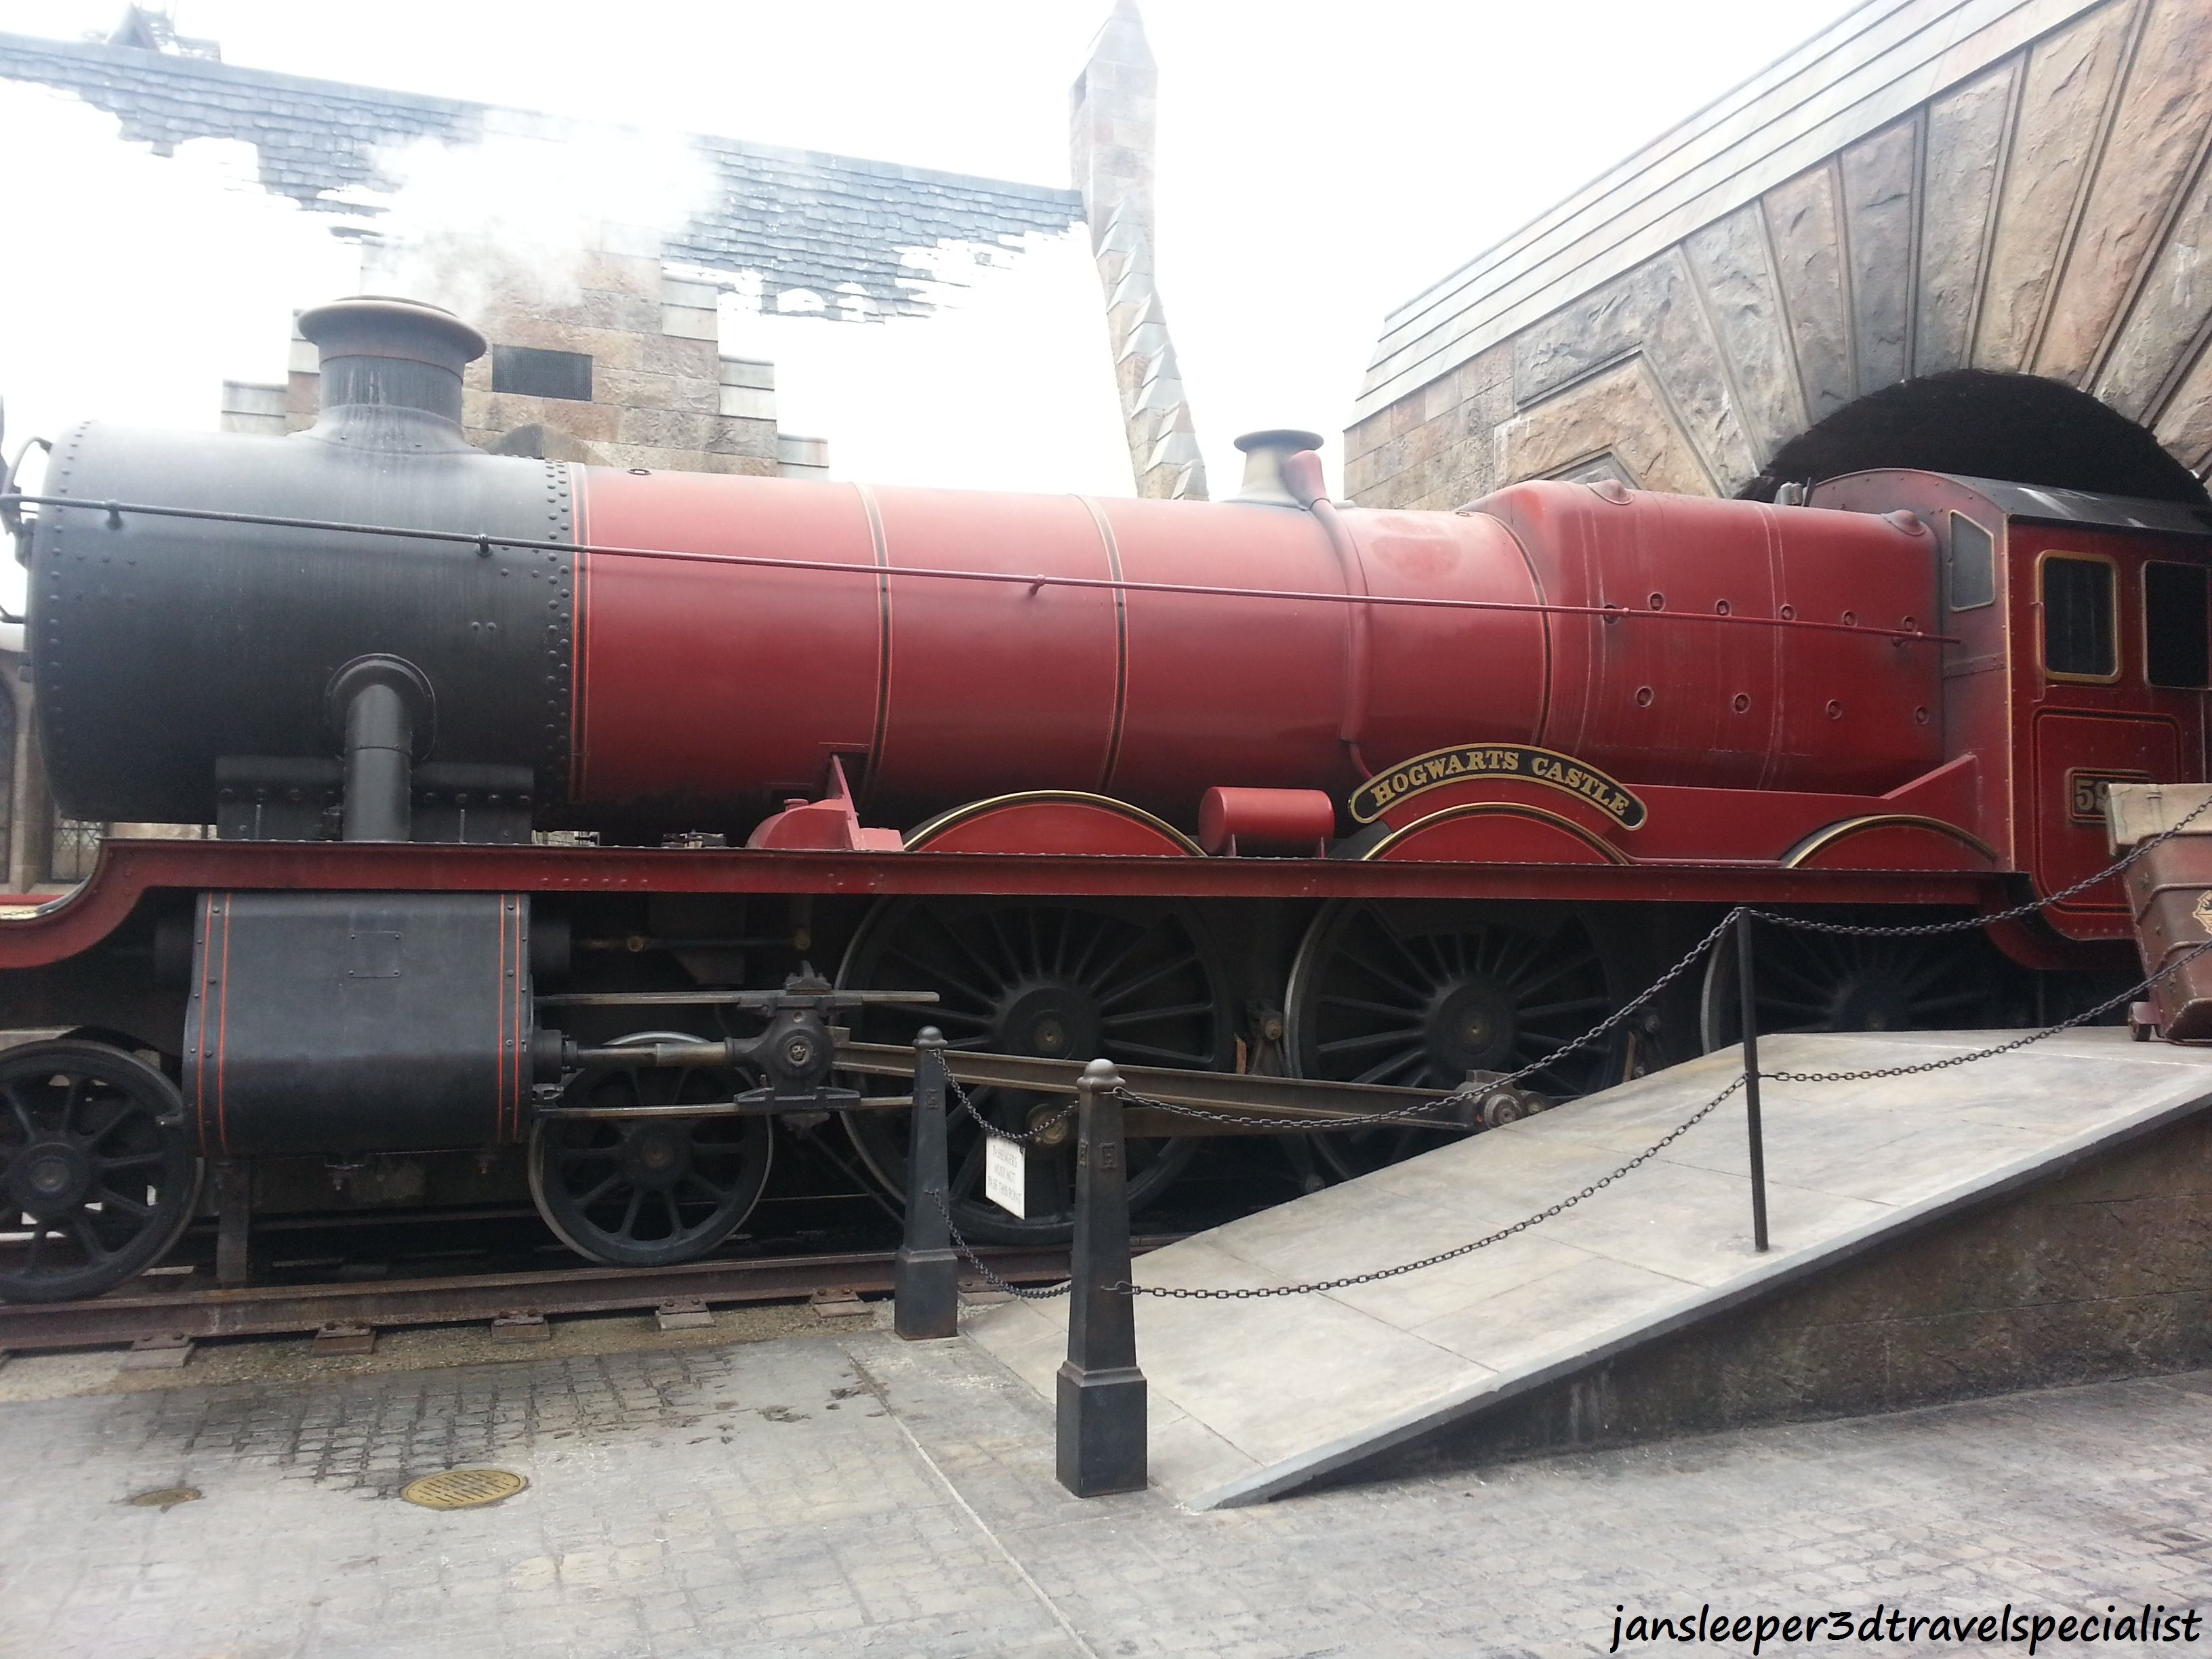 Hogwarts express will be up and running soonmake sure